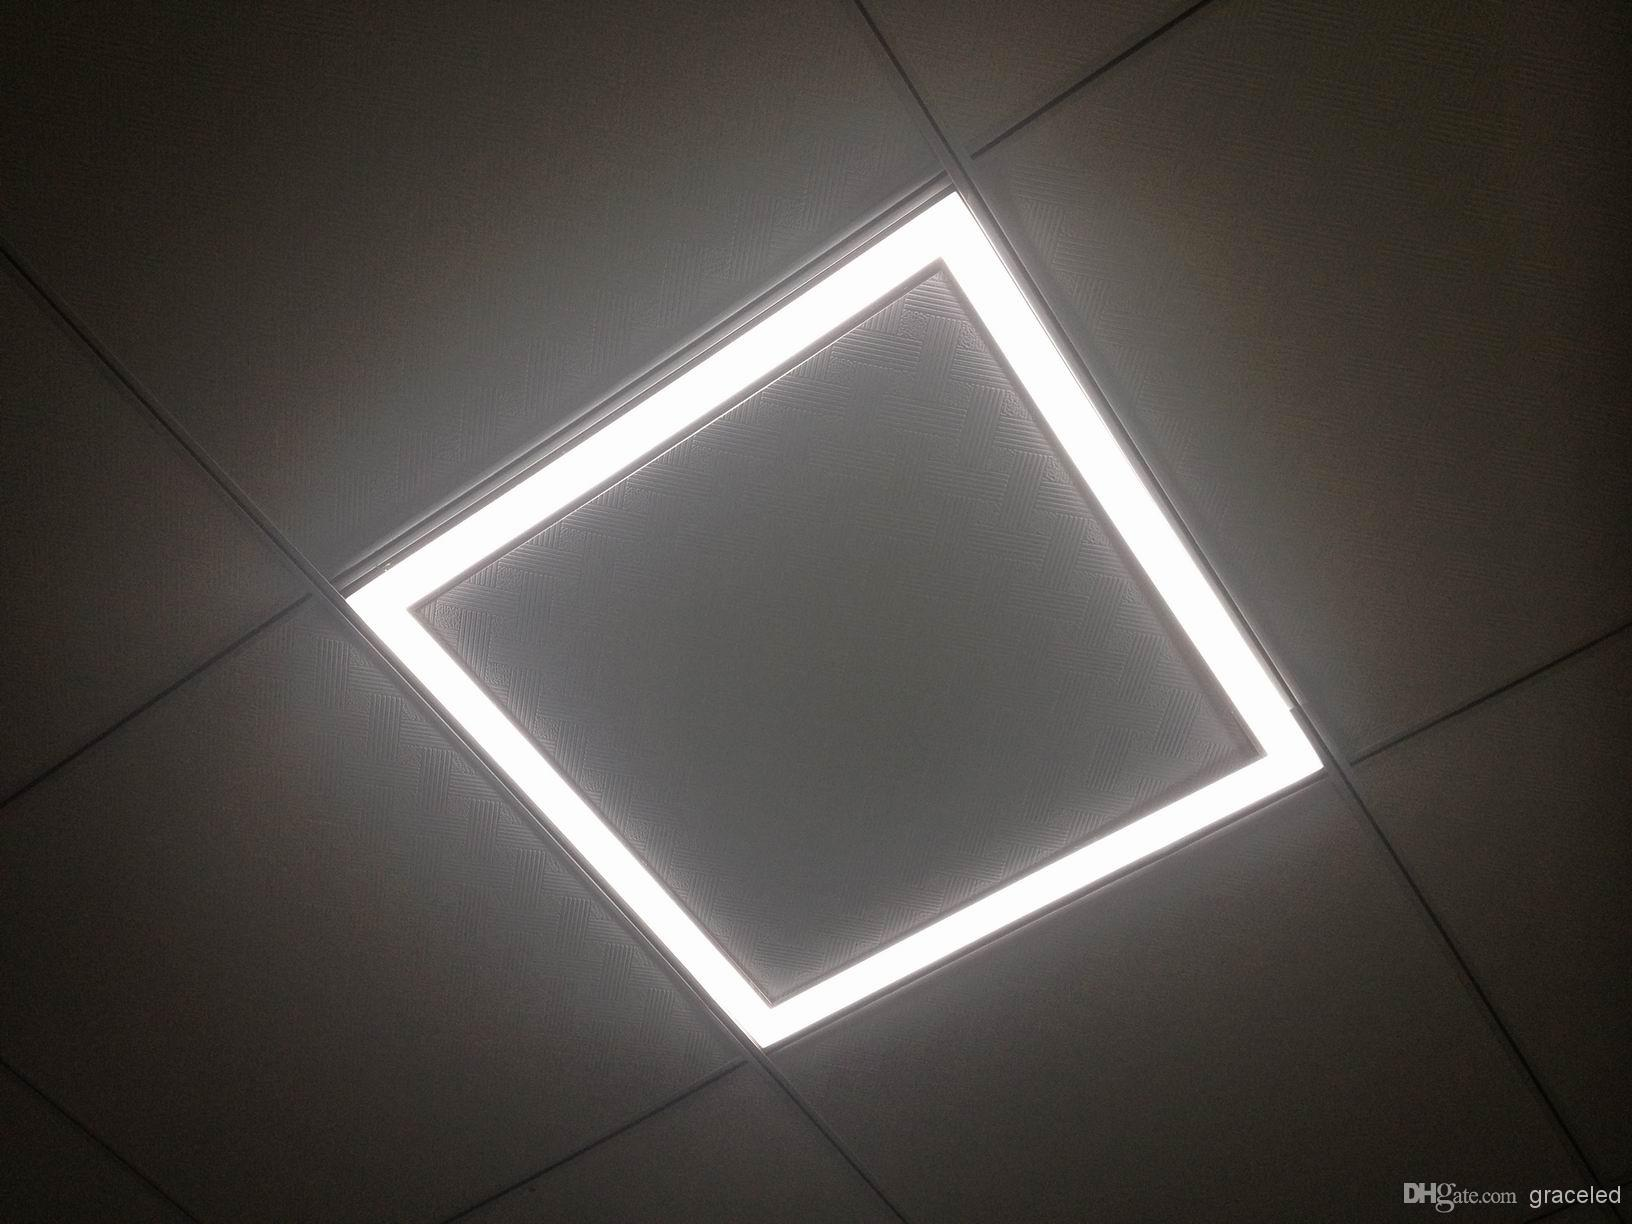 Suspended Ceiling Lights 600mm X 600mm : Dimmable led fram ceiling light w mm high